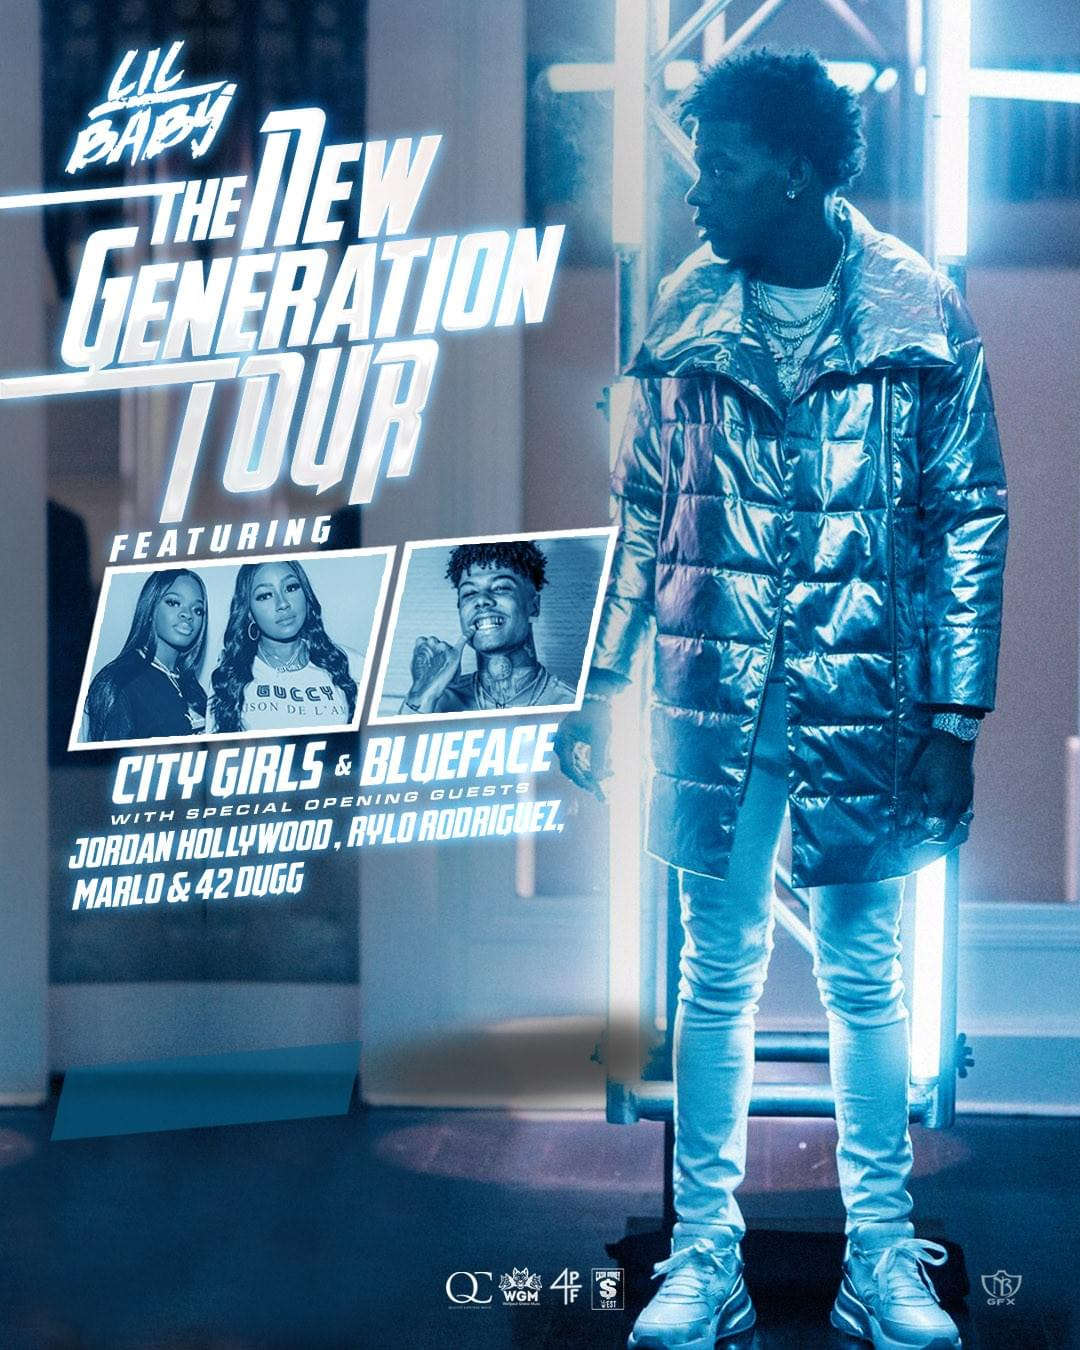 LIL BABY COMING TO OKC!!